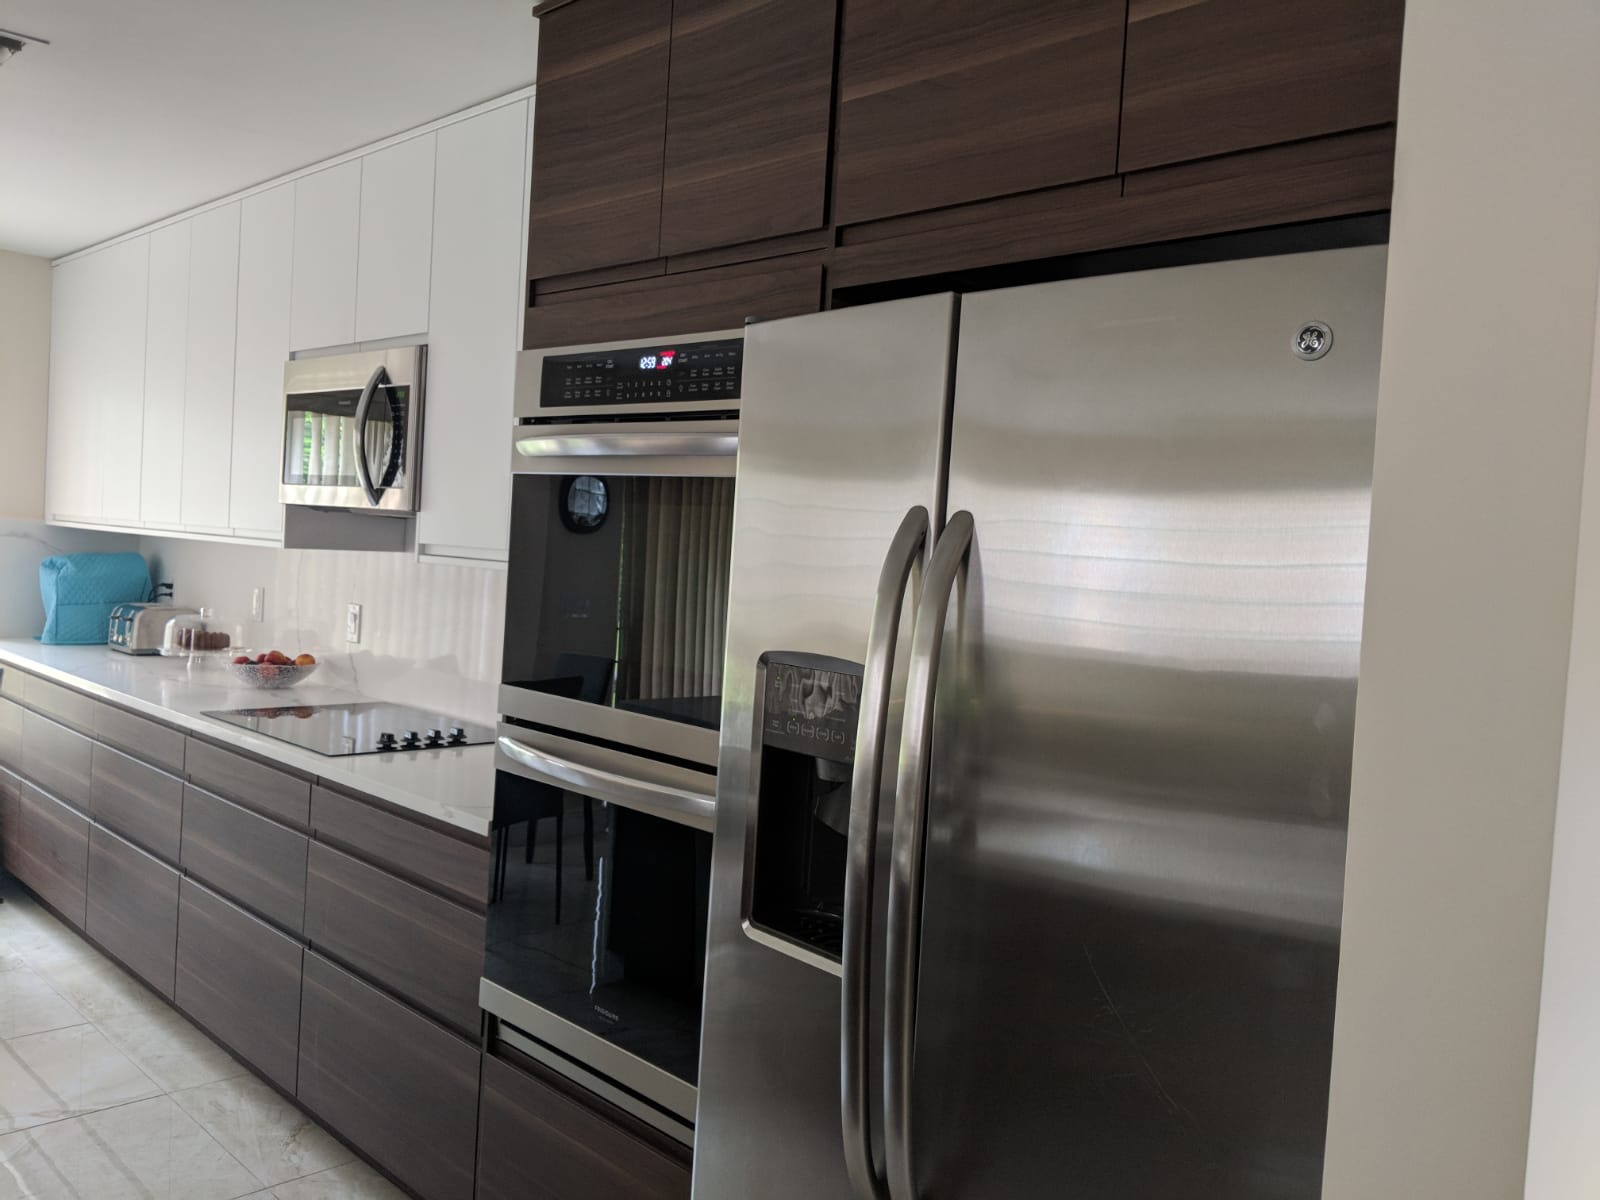 ikea kitchen installer Boca Raton d1